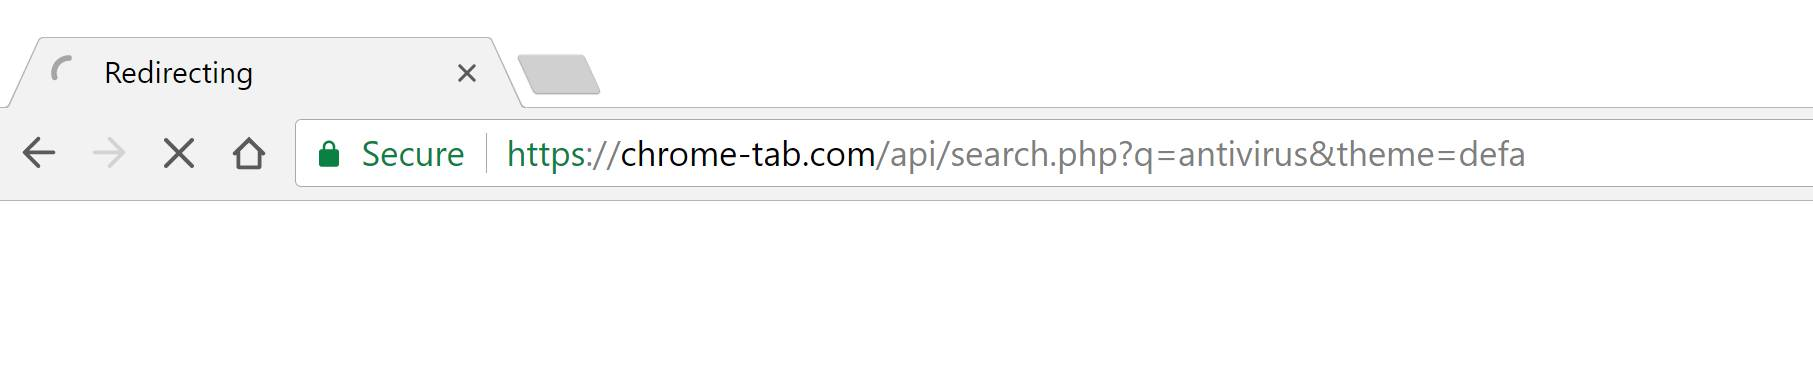 how to delete a tab in chrome